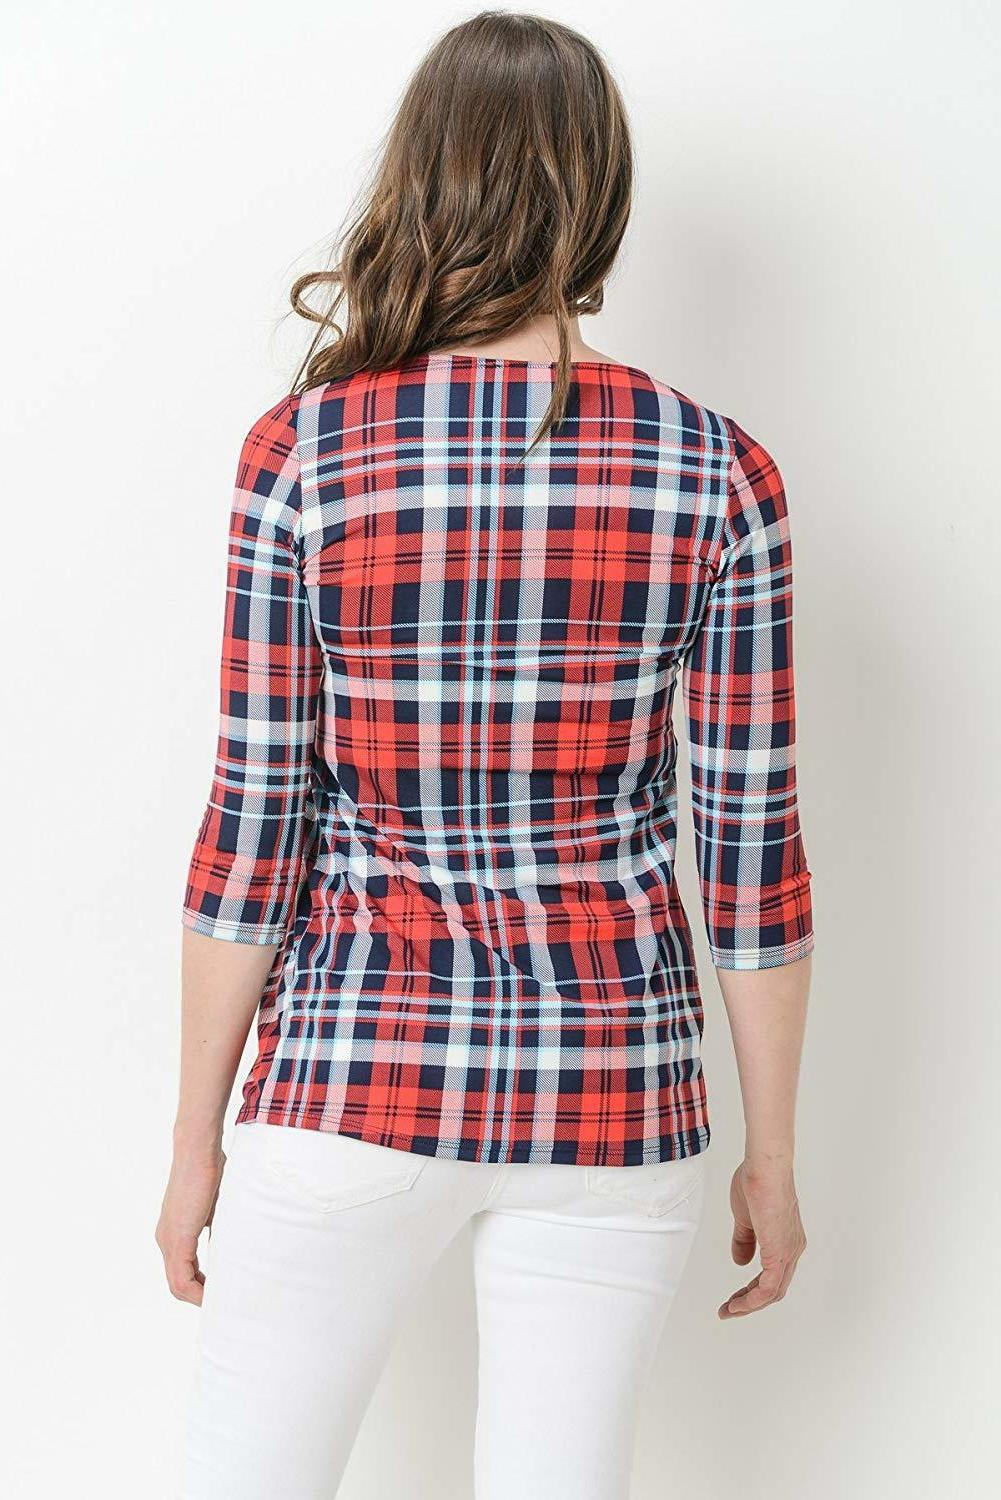 LaClef 3/4 Front Peplum